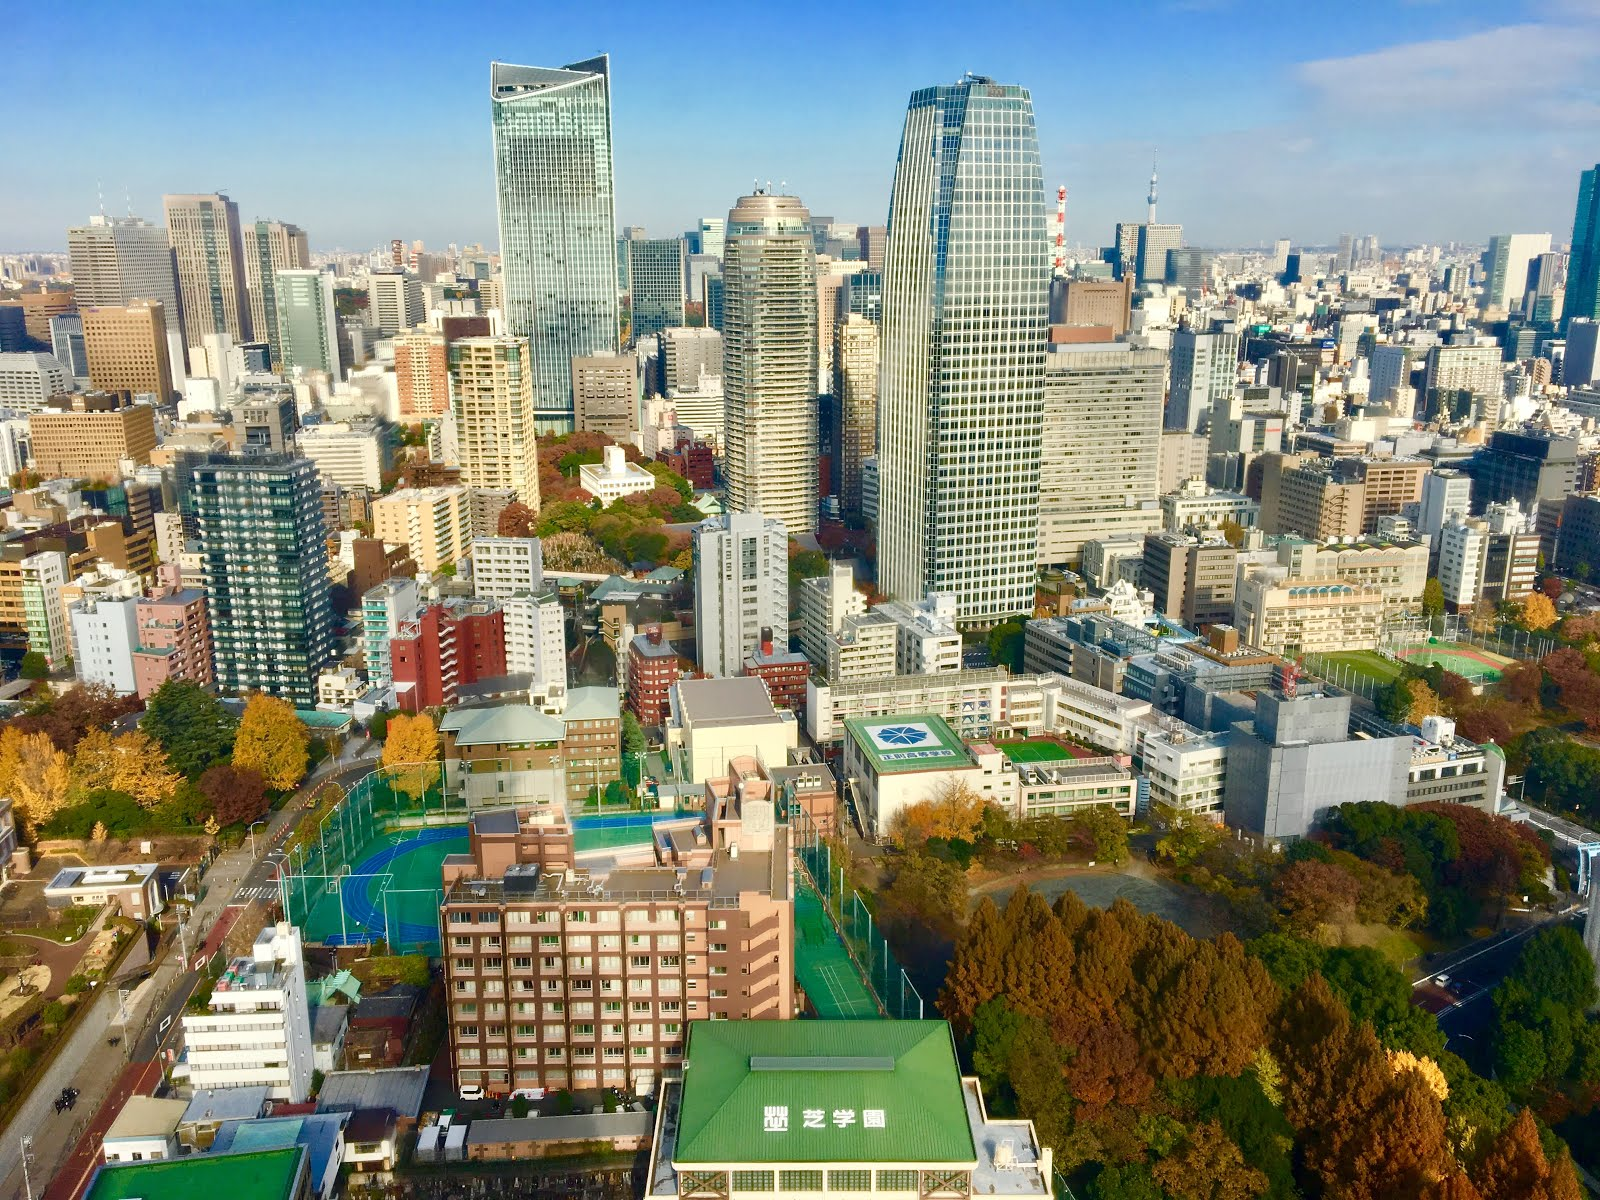 View of Tokyo from the Tokyo Tower